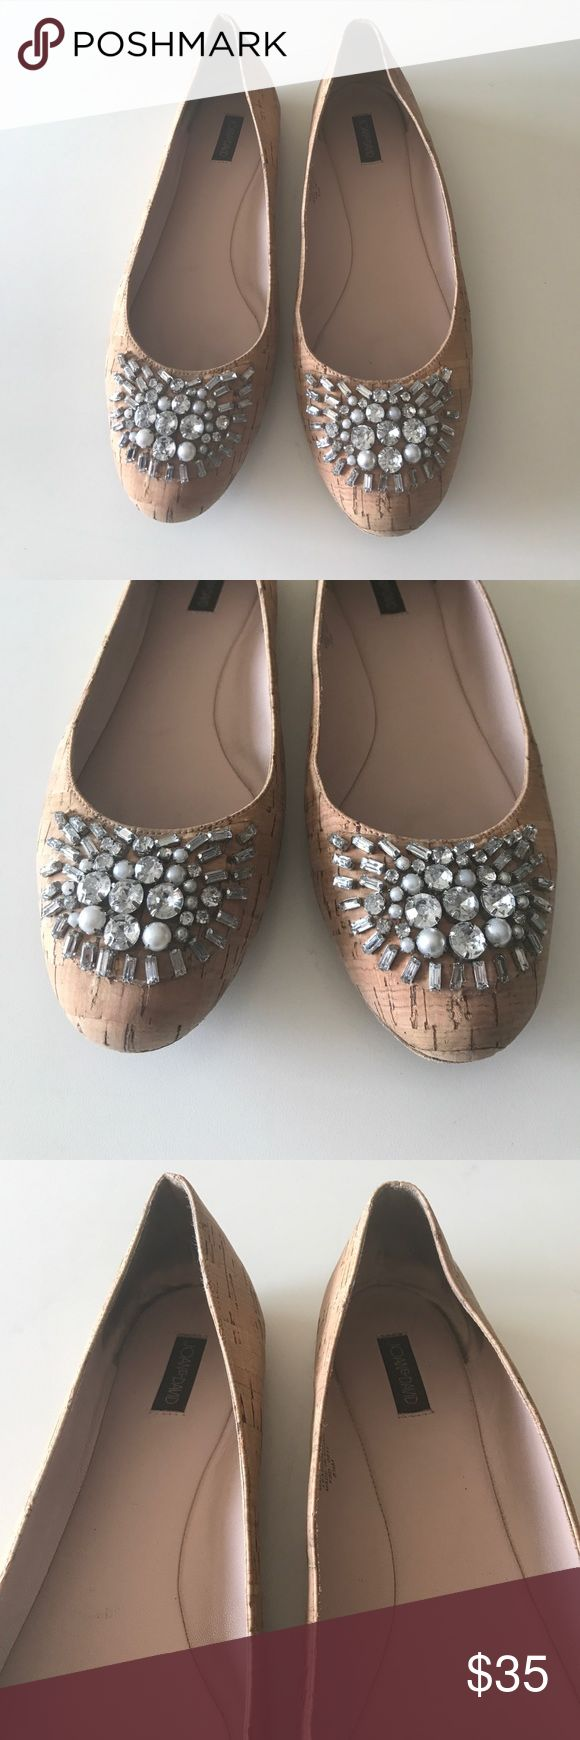 Joan & David Joan & David cork flats. Size is 8 1/2. Very good used condition. No heel at all. Comes with box. Is a very cute piece to wear with slacks or a skirt. The diamond front gives it a very classy look. Cute baby pink inner sole. Joan & David Shoes Flats & Loafers